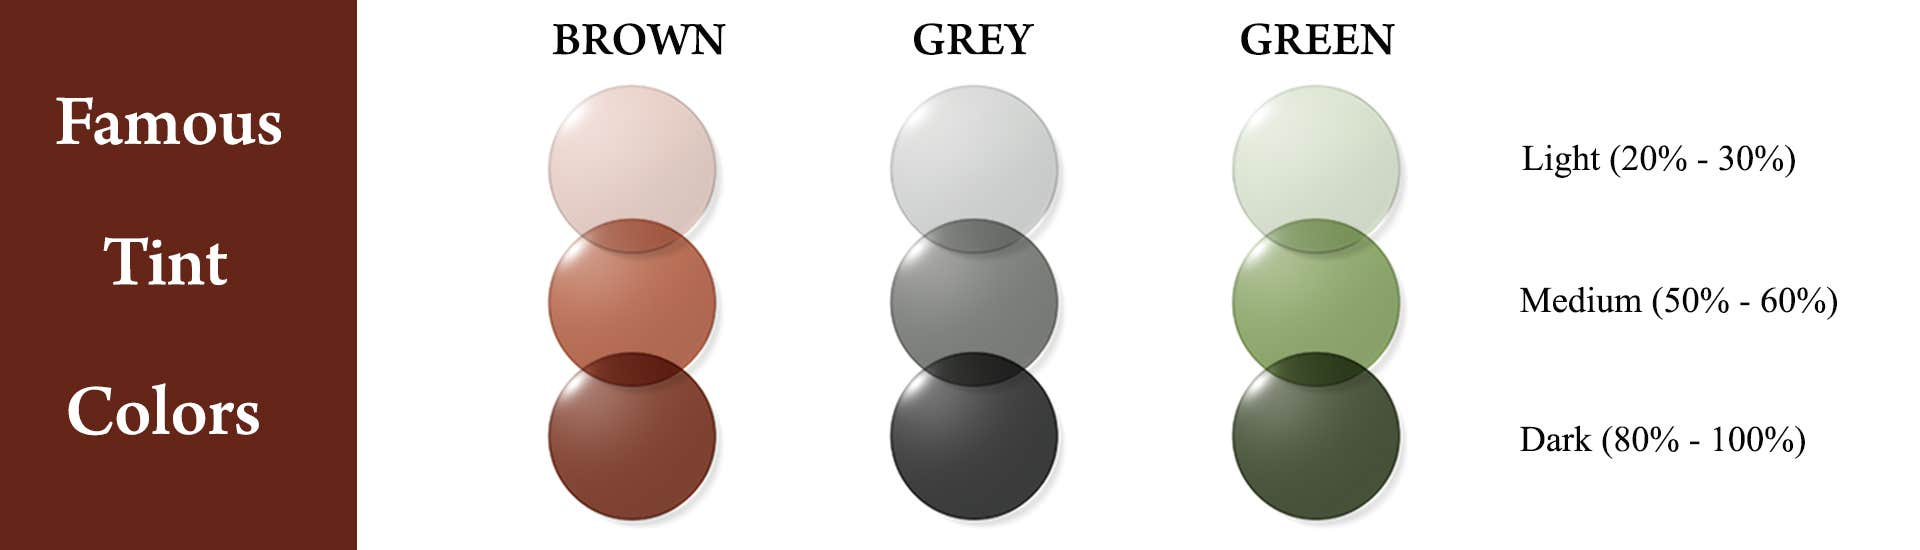 famous tint colors